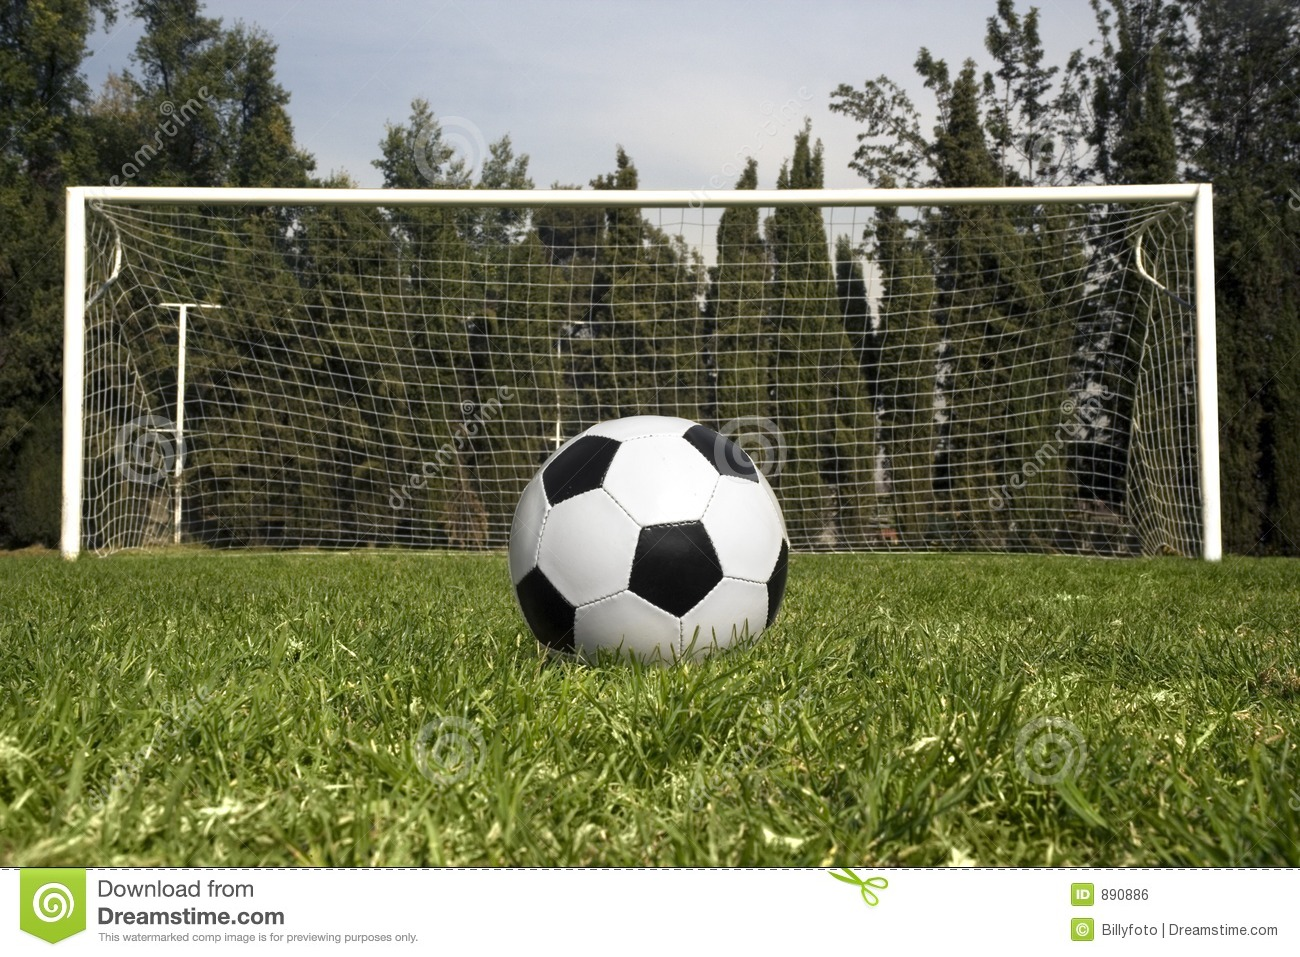 Soccer Ball Waiting To Be Kicked Stock Photo - Image of competition ... 5c65f97c1